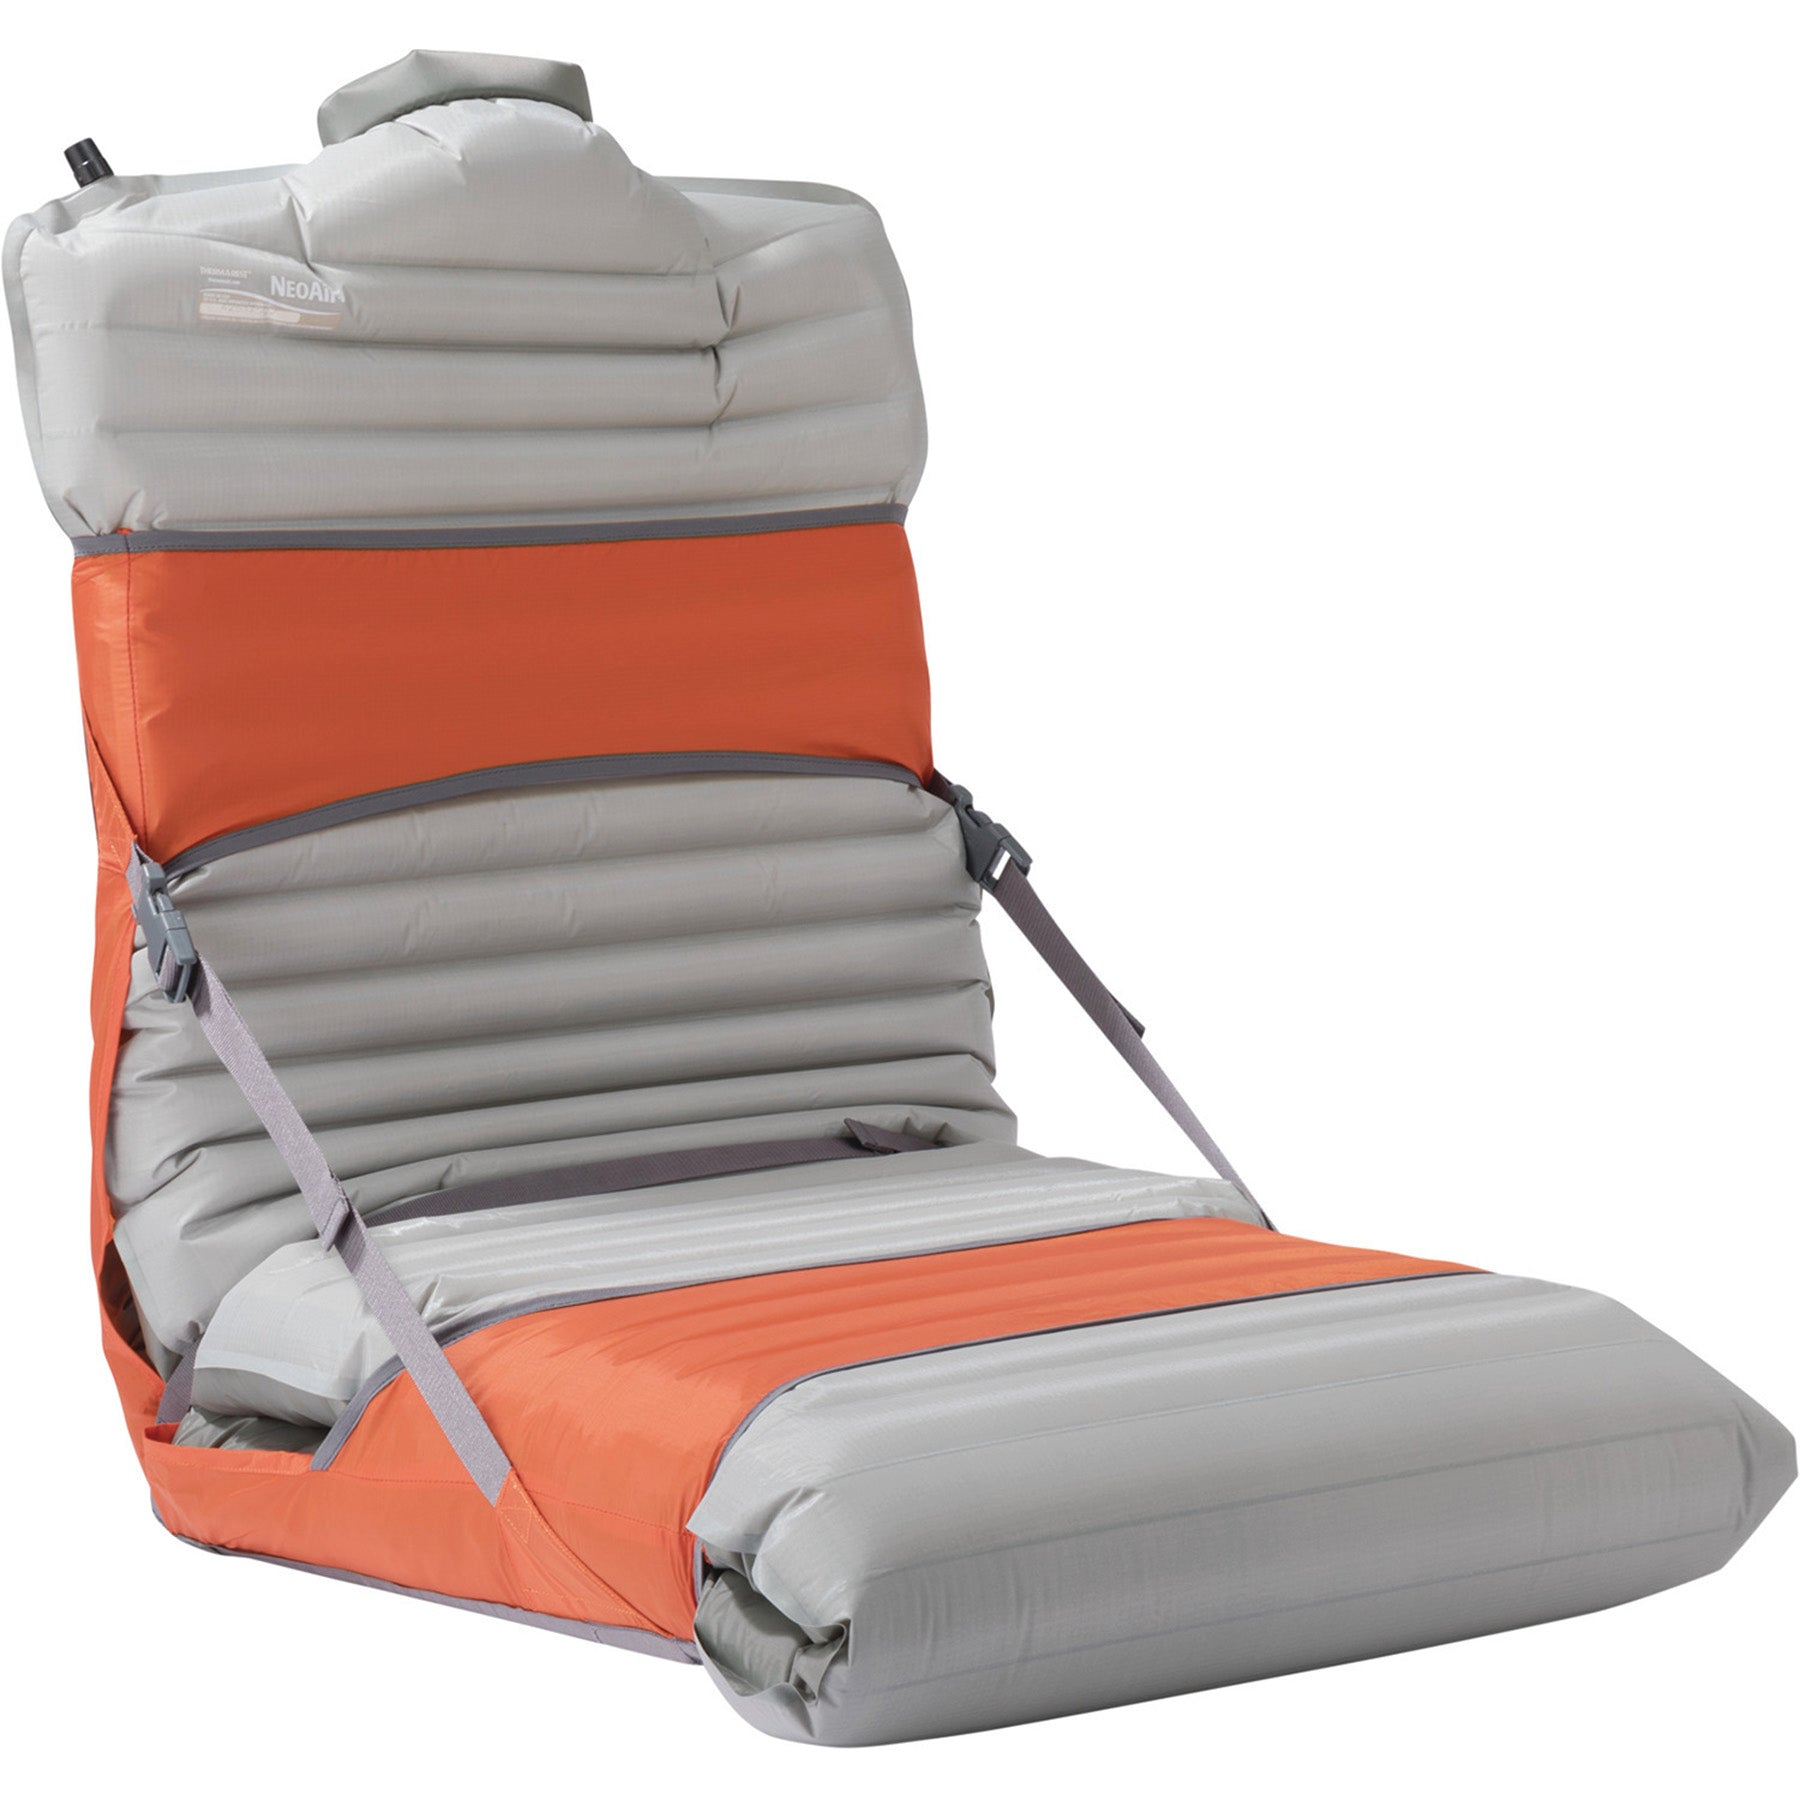 The thermarest trekker chair with a pad installed, ready to sit in